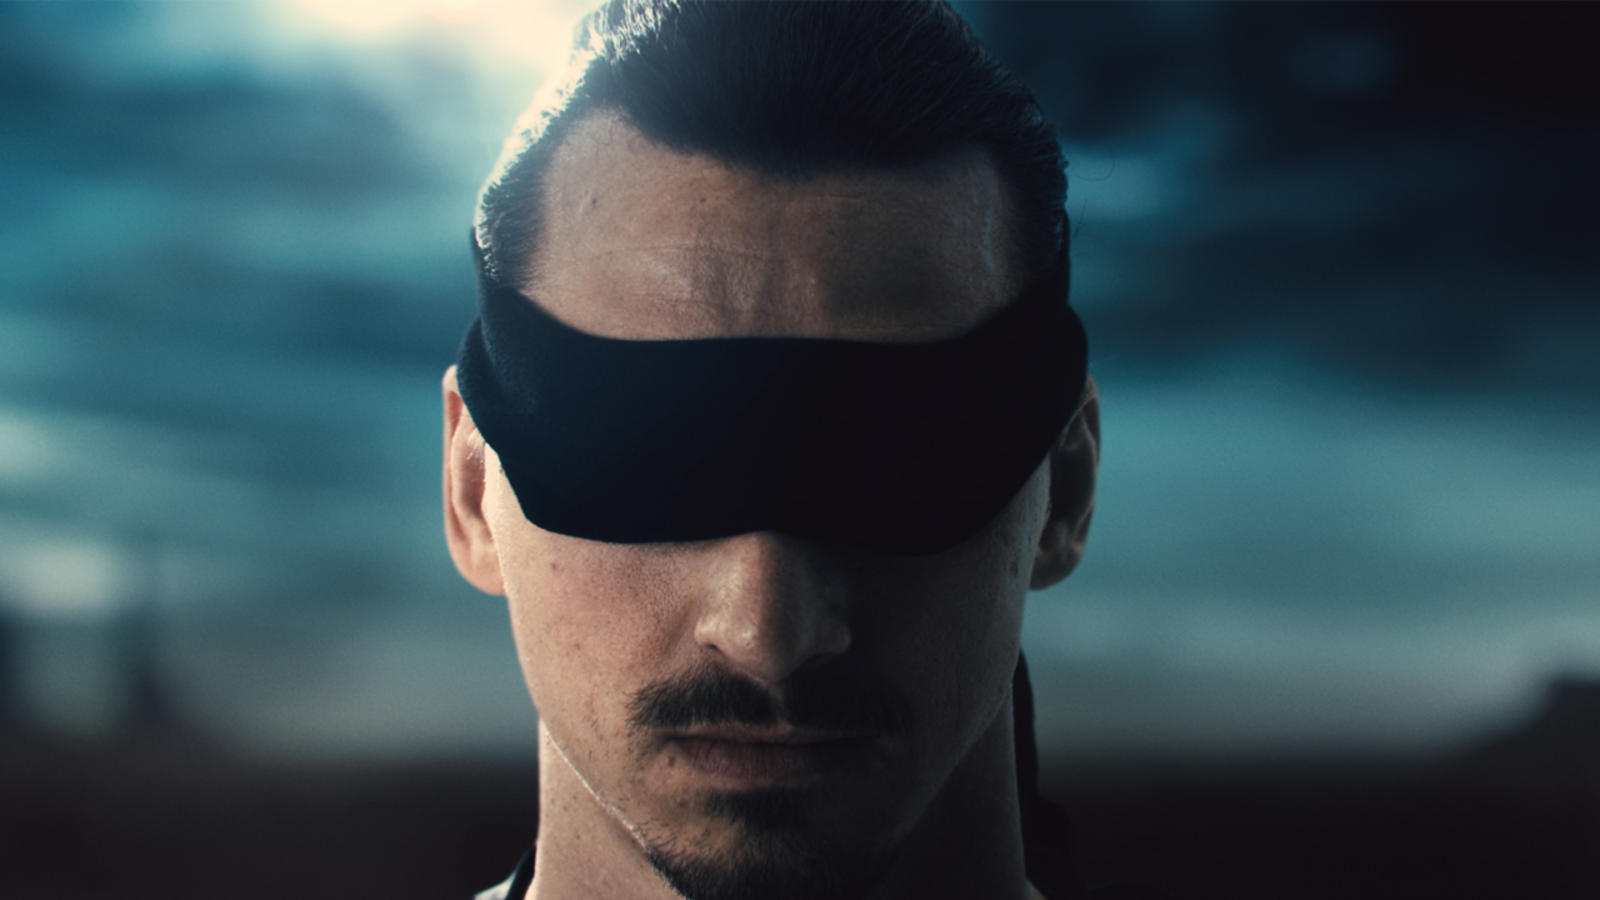 Zlatan - Trust your instincts